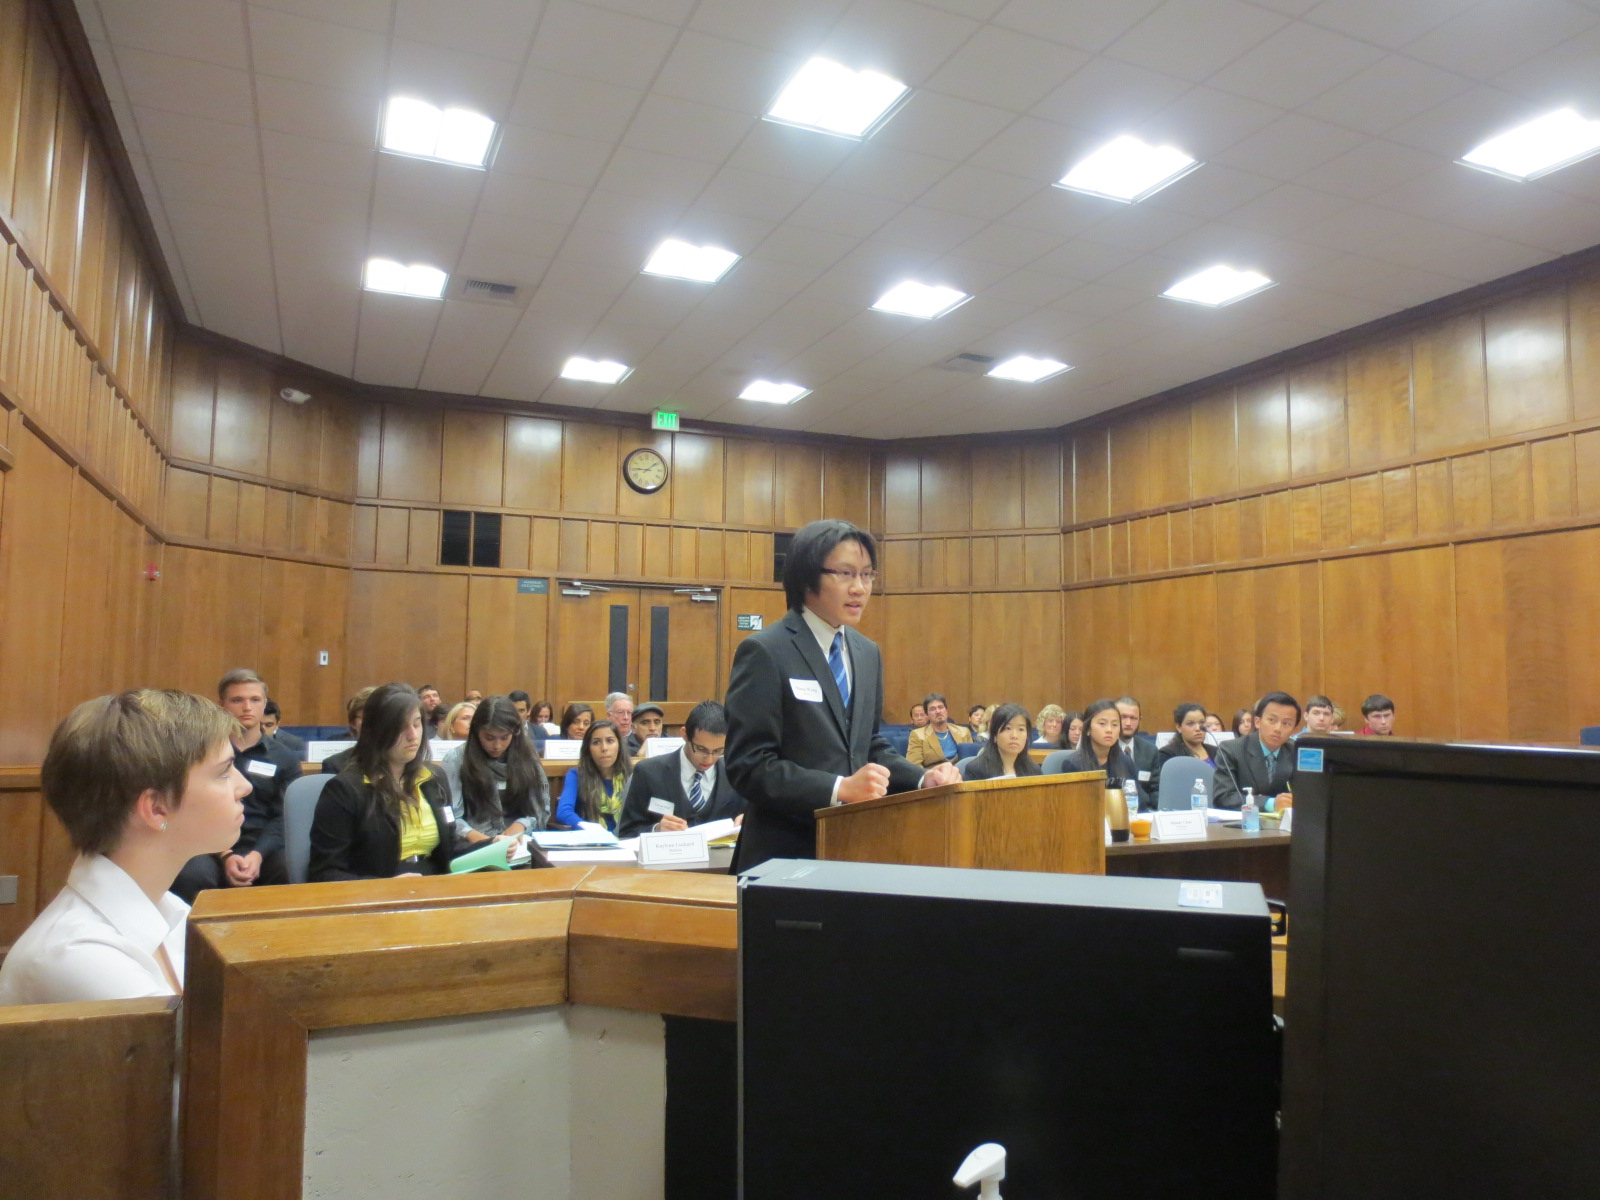 Photo of student at podium in court room making a case during mock trial